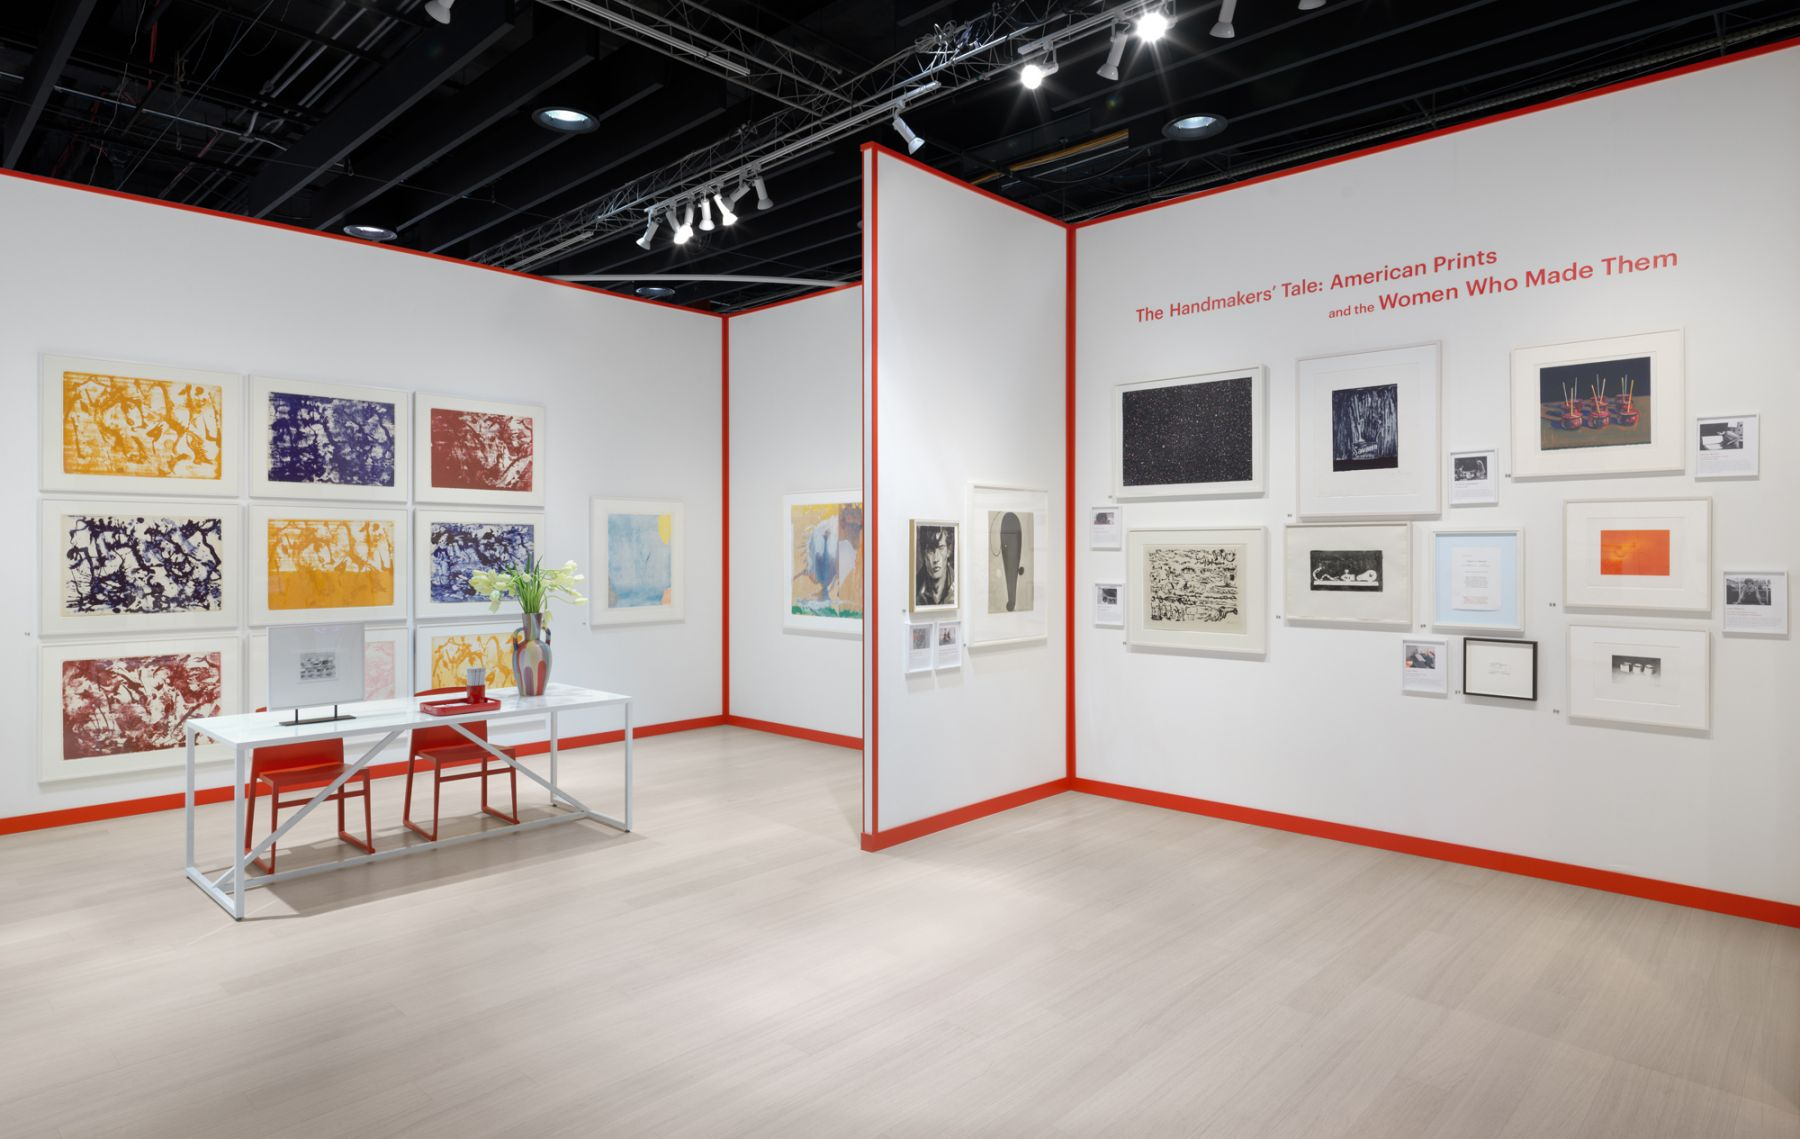 The Armory Show 2020 at Susan Sheehan Gallery